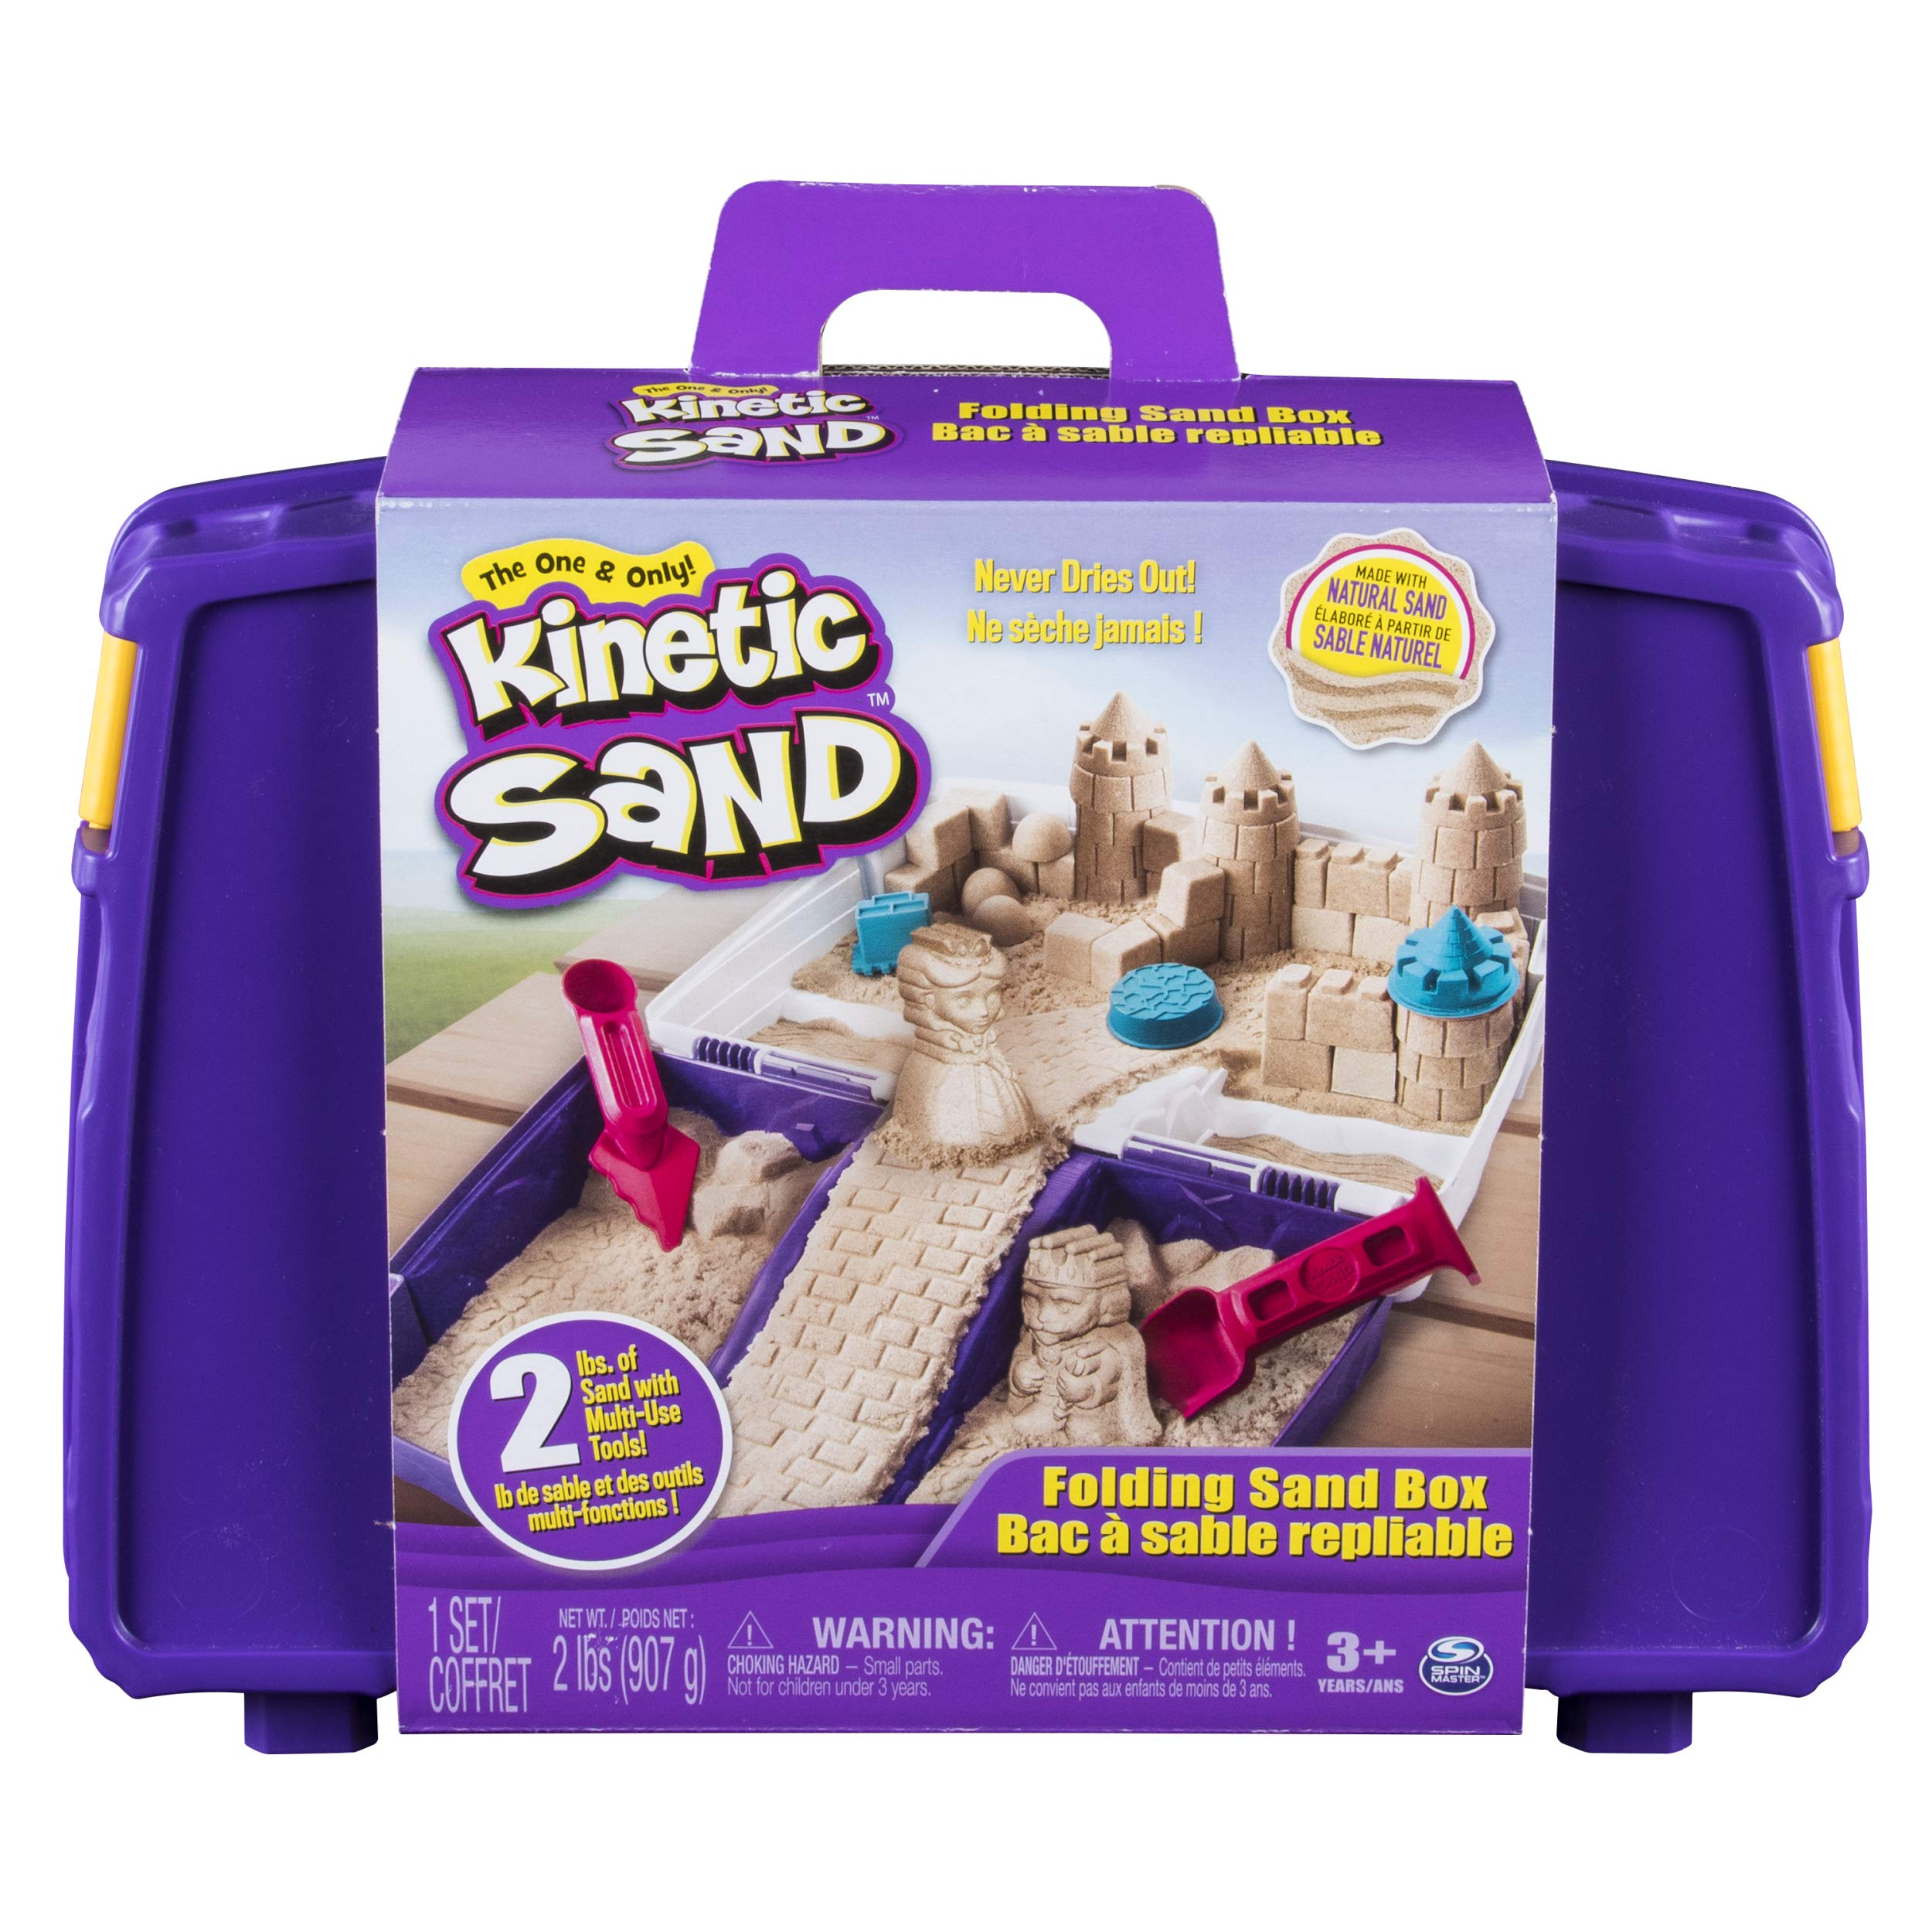 The One and Only Kinetic Sand, Folding Sand Box with 2lbs of Kinetic Sand by Kinetic Sand